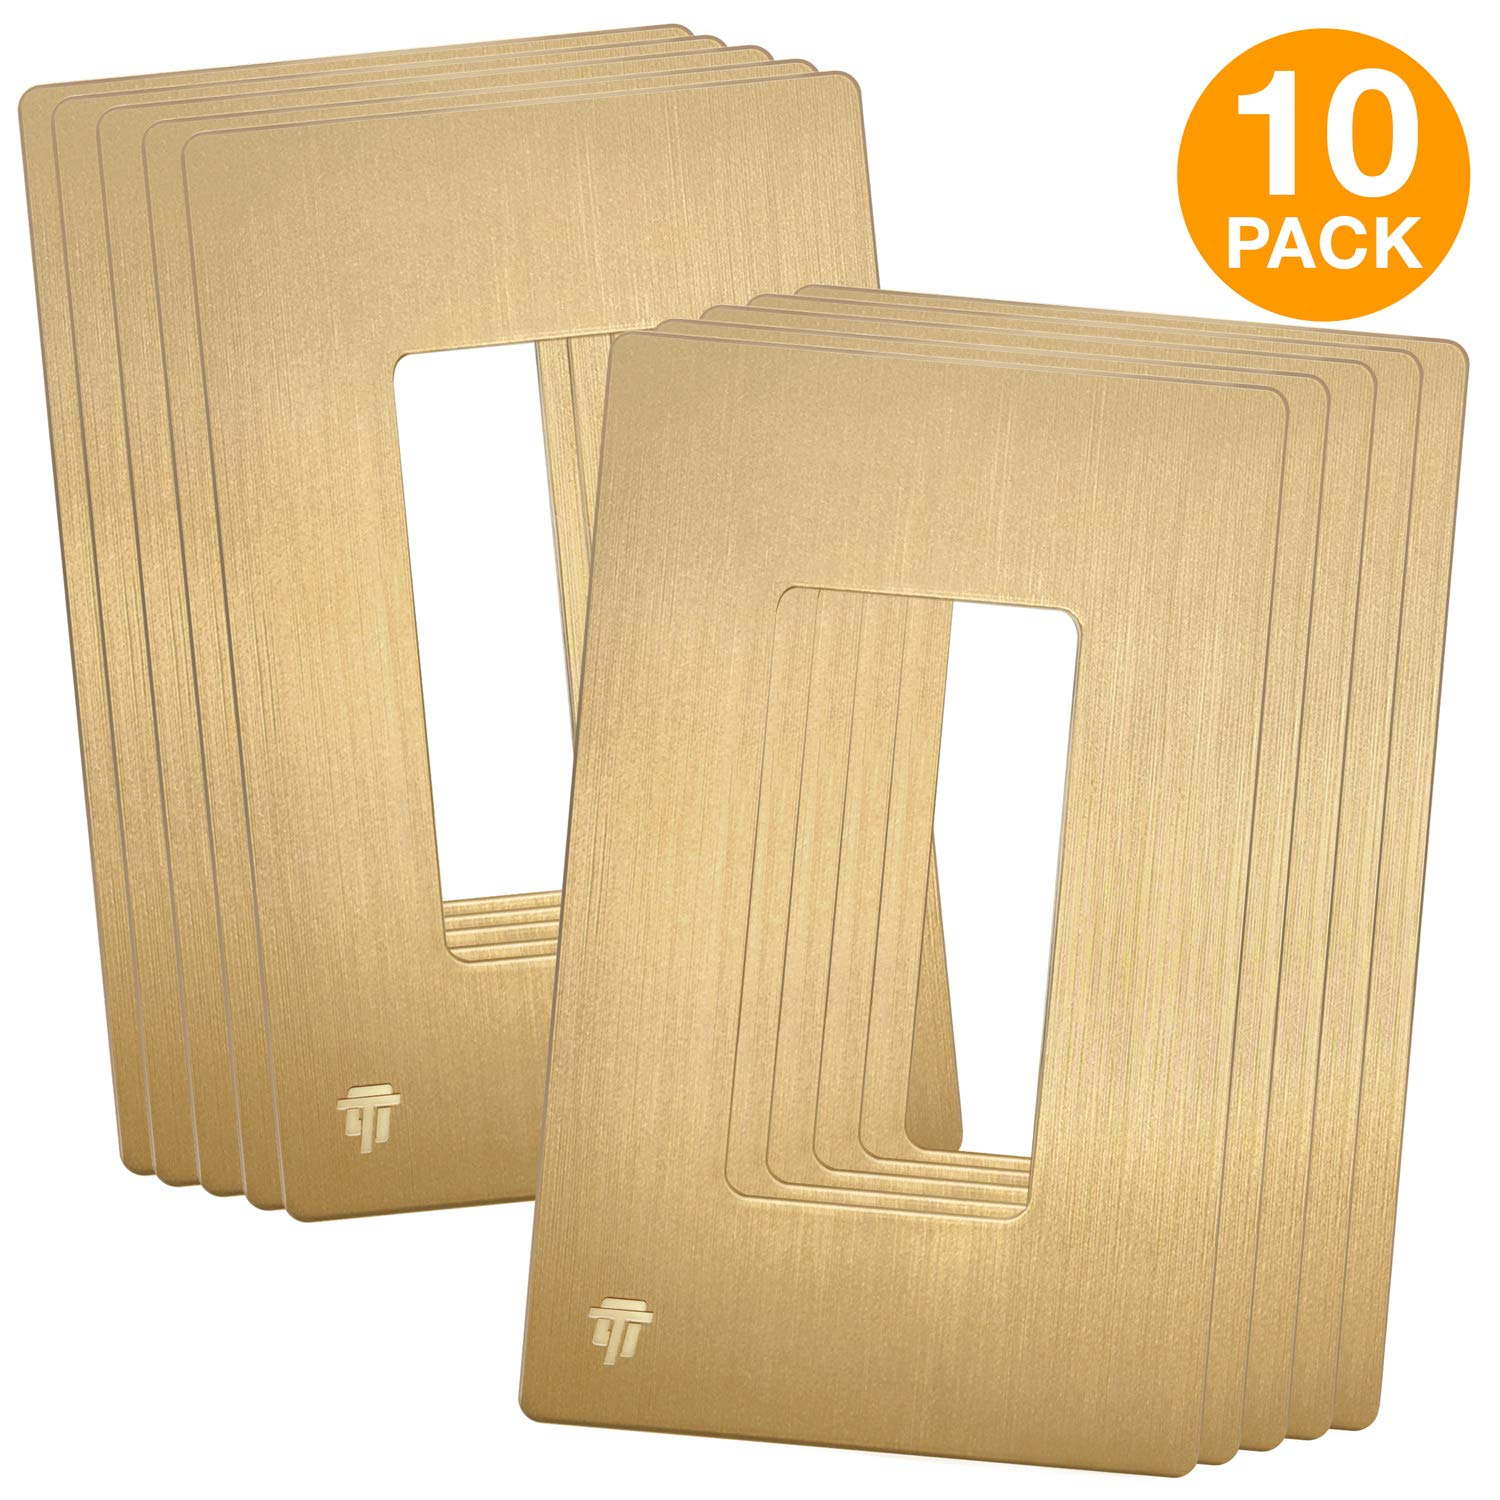 "ENERLITES Elite Series Brushed Decorator Screwless Wall Plate, Decorative Child Safe Cover, Standard Size 1-Gang 4.68"" H x 2.94"" W, Unbreakable Polycarbonate Thermoplastic, SI8831-BGD, Brushed Gold …"